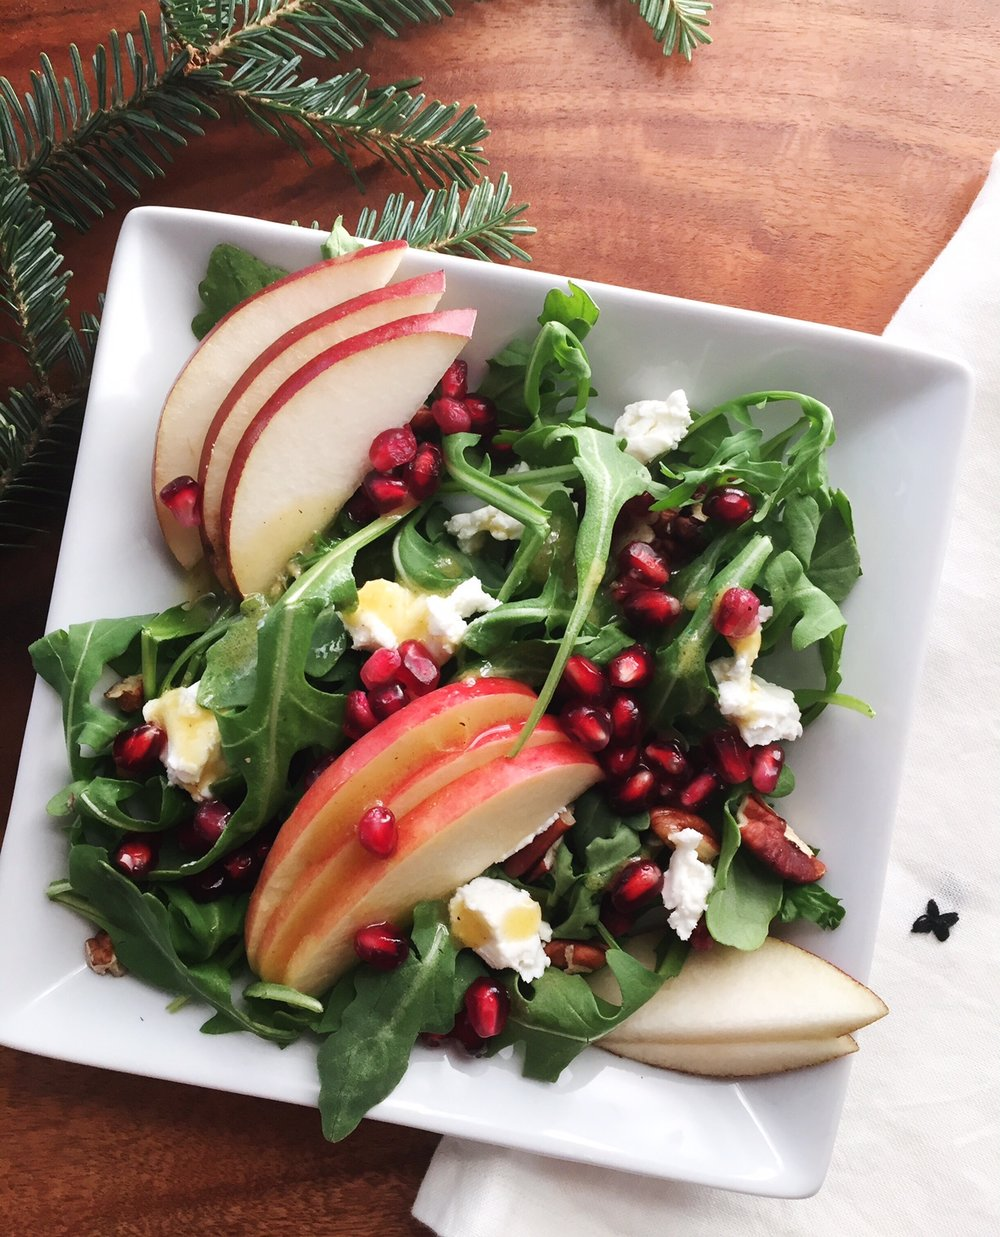 Pear_and-Ginger_Salad1.JPG